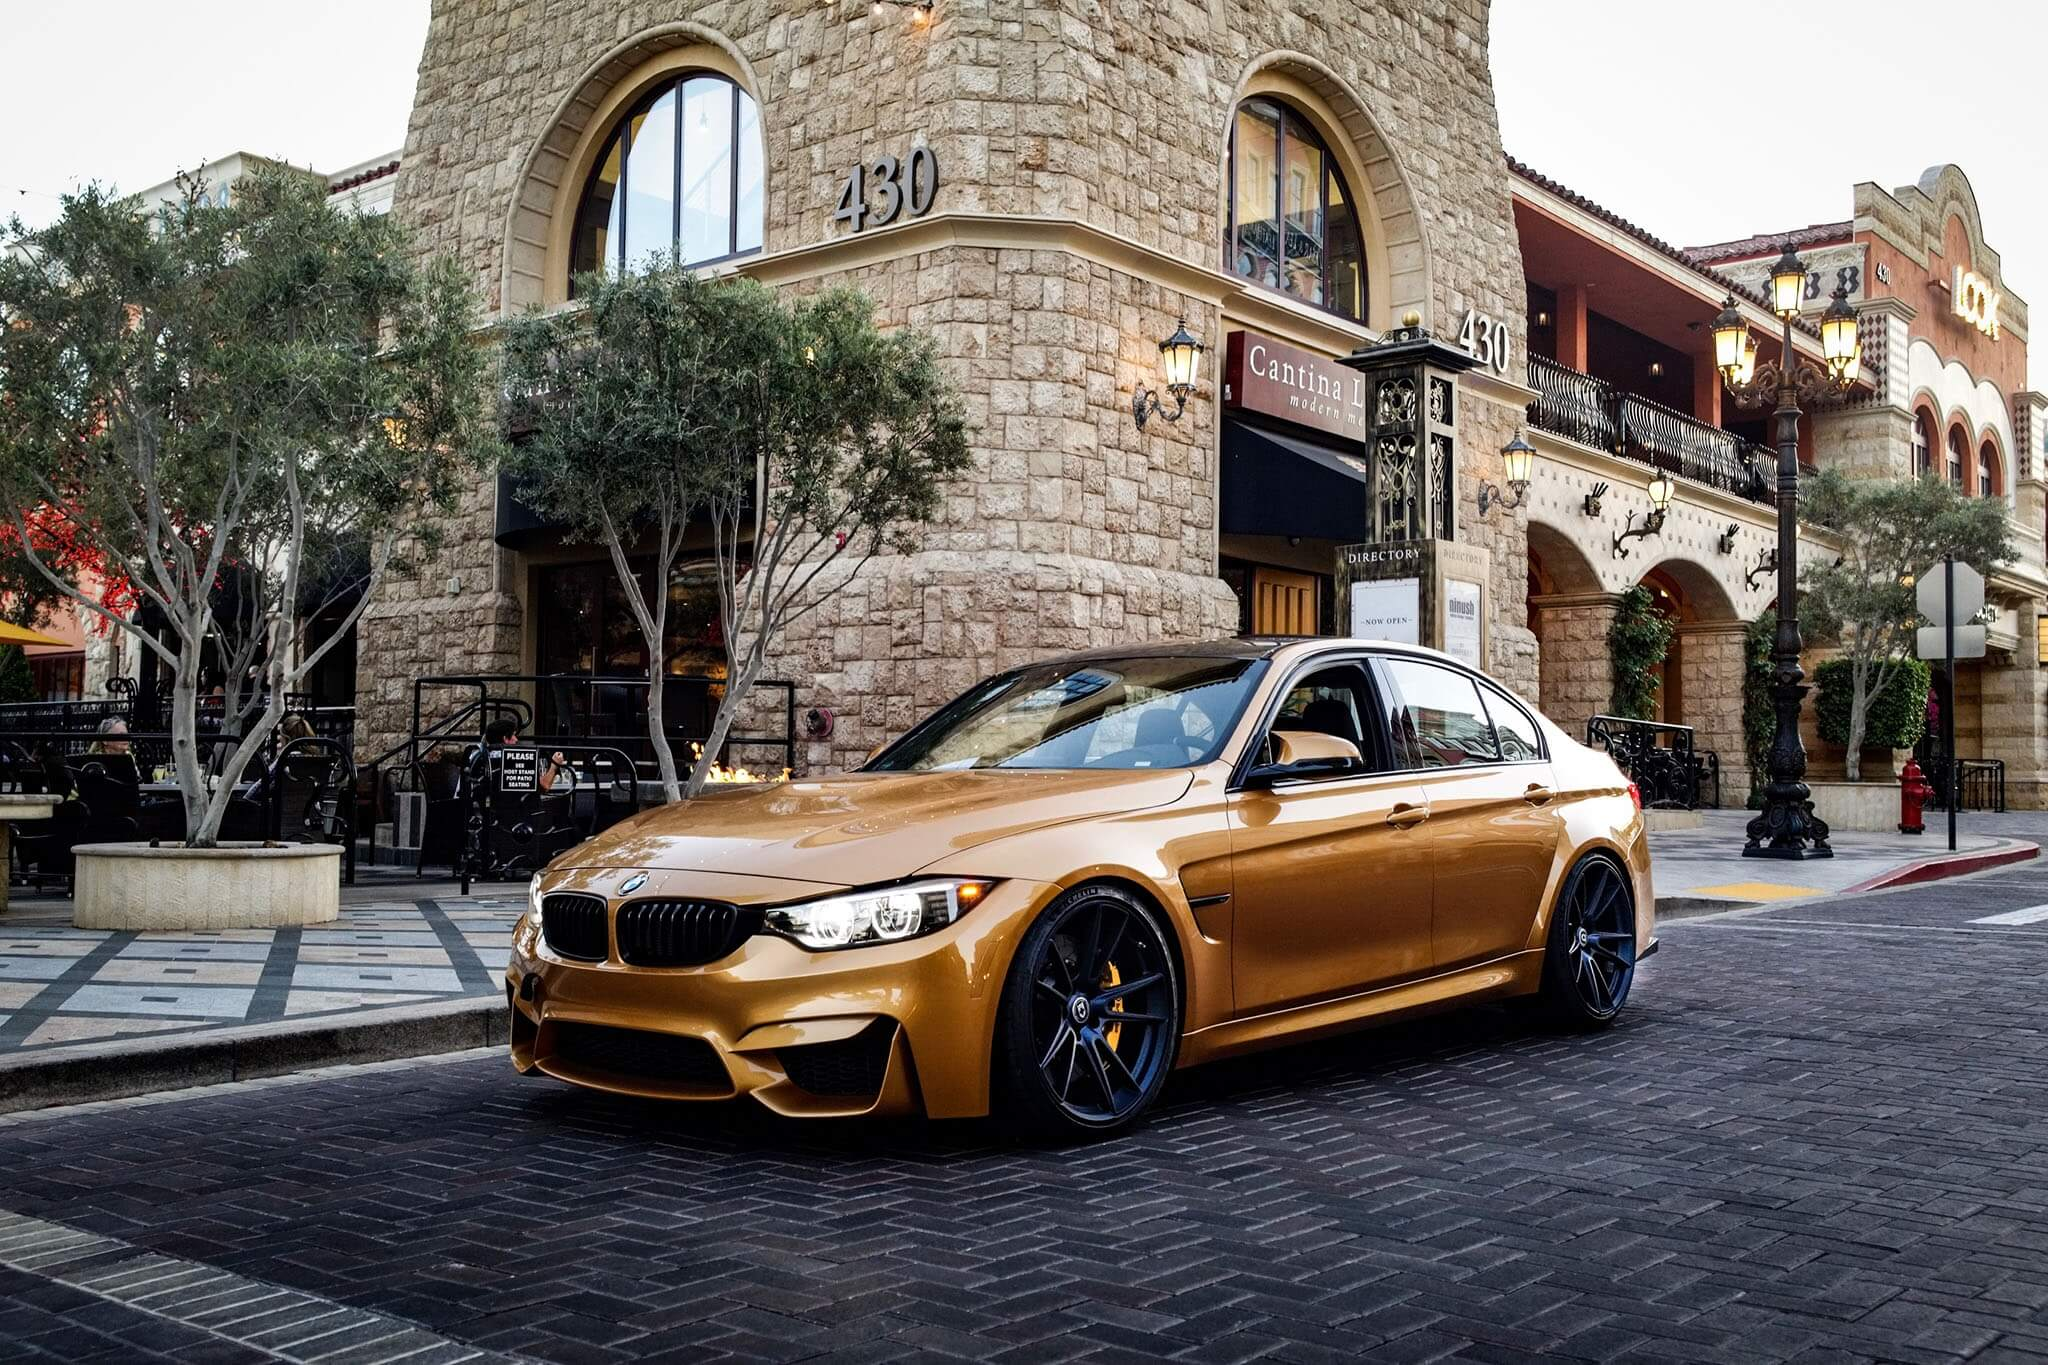 BMW M3 Wheels Sydney